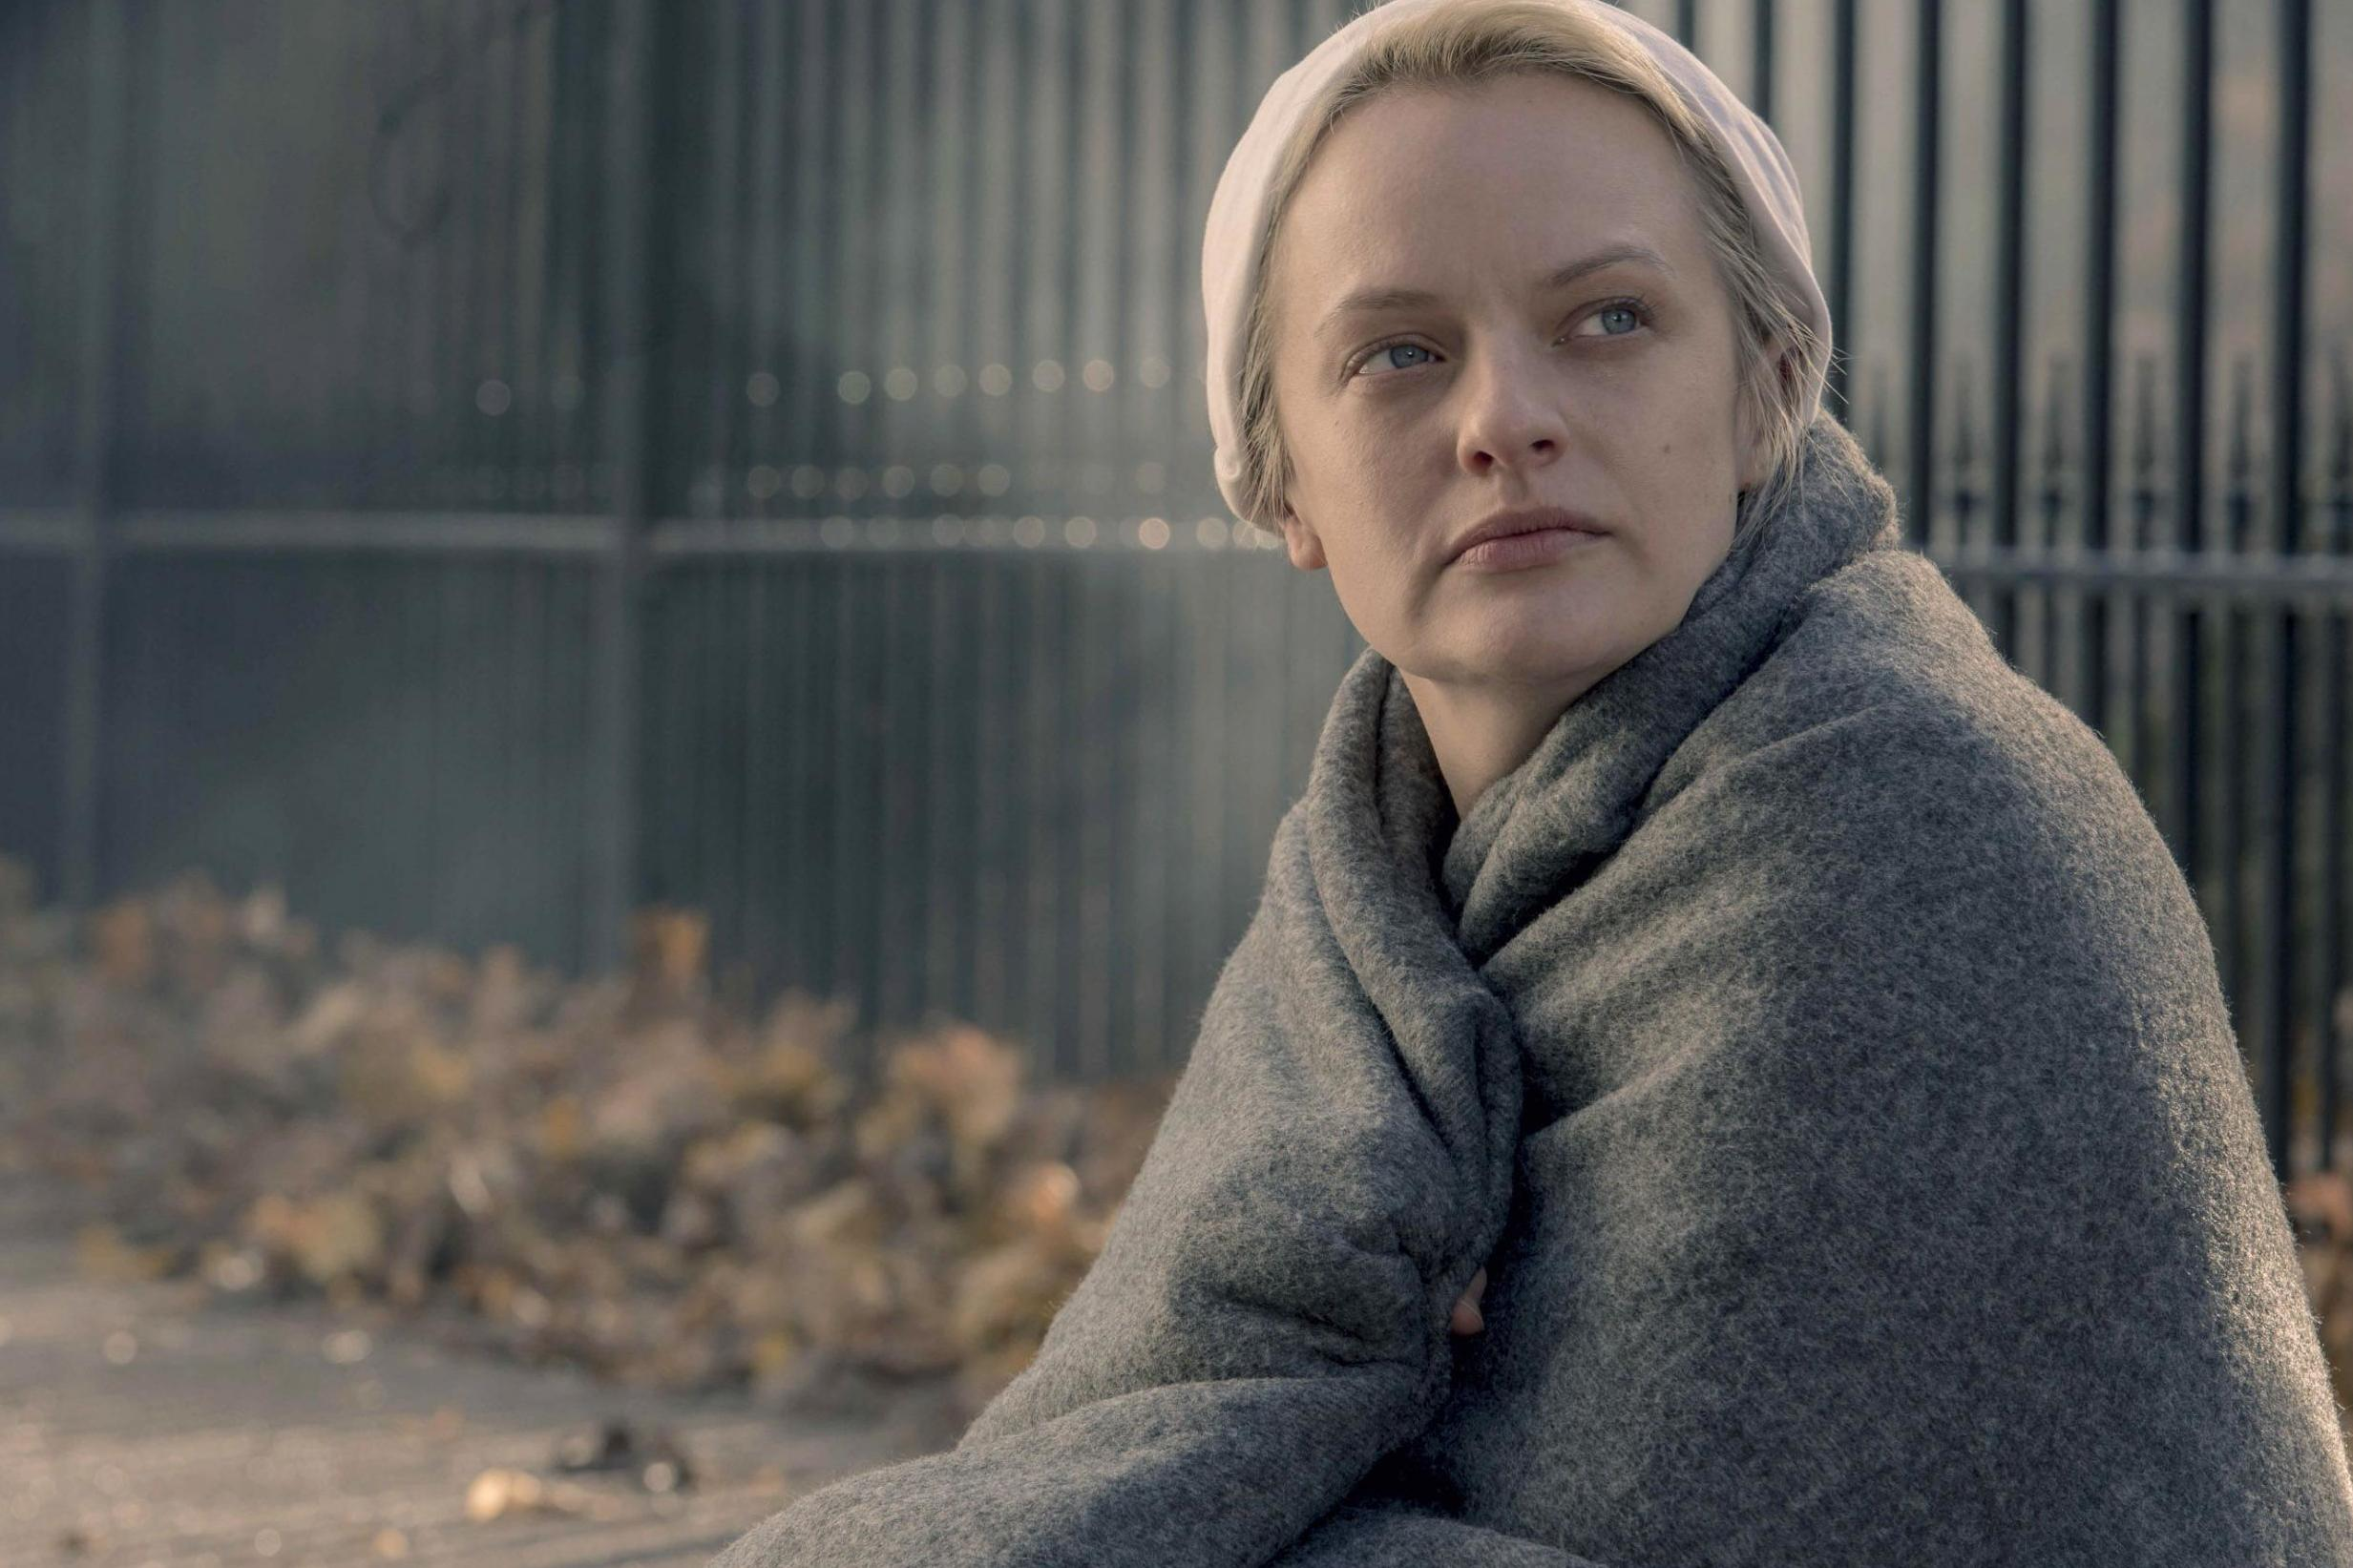 The Handmaid's Tale season 3 episode 1 review: Worth watching for